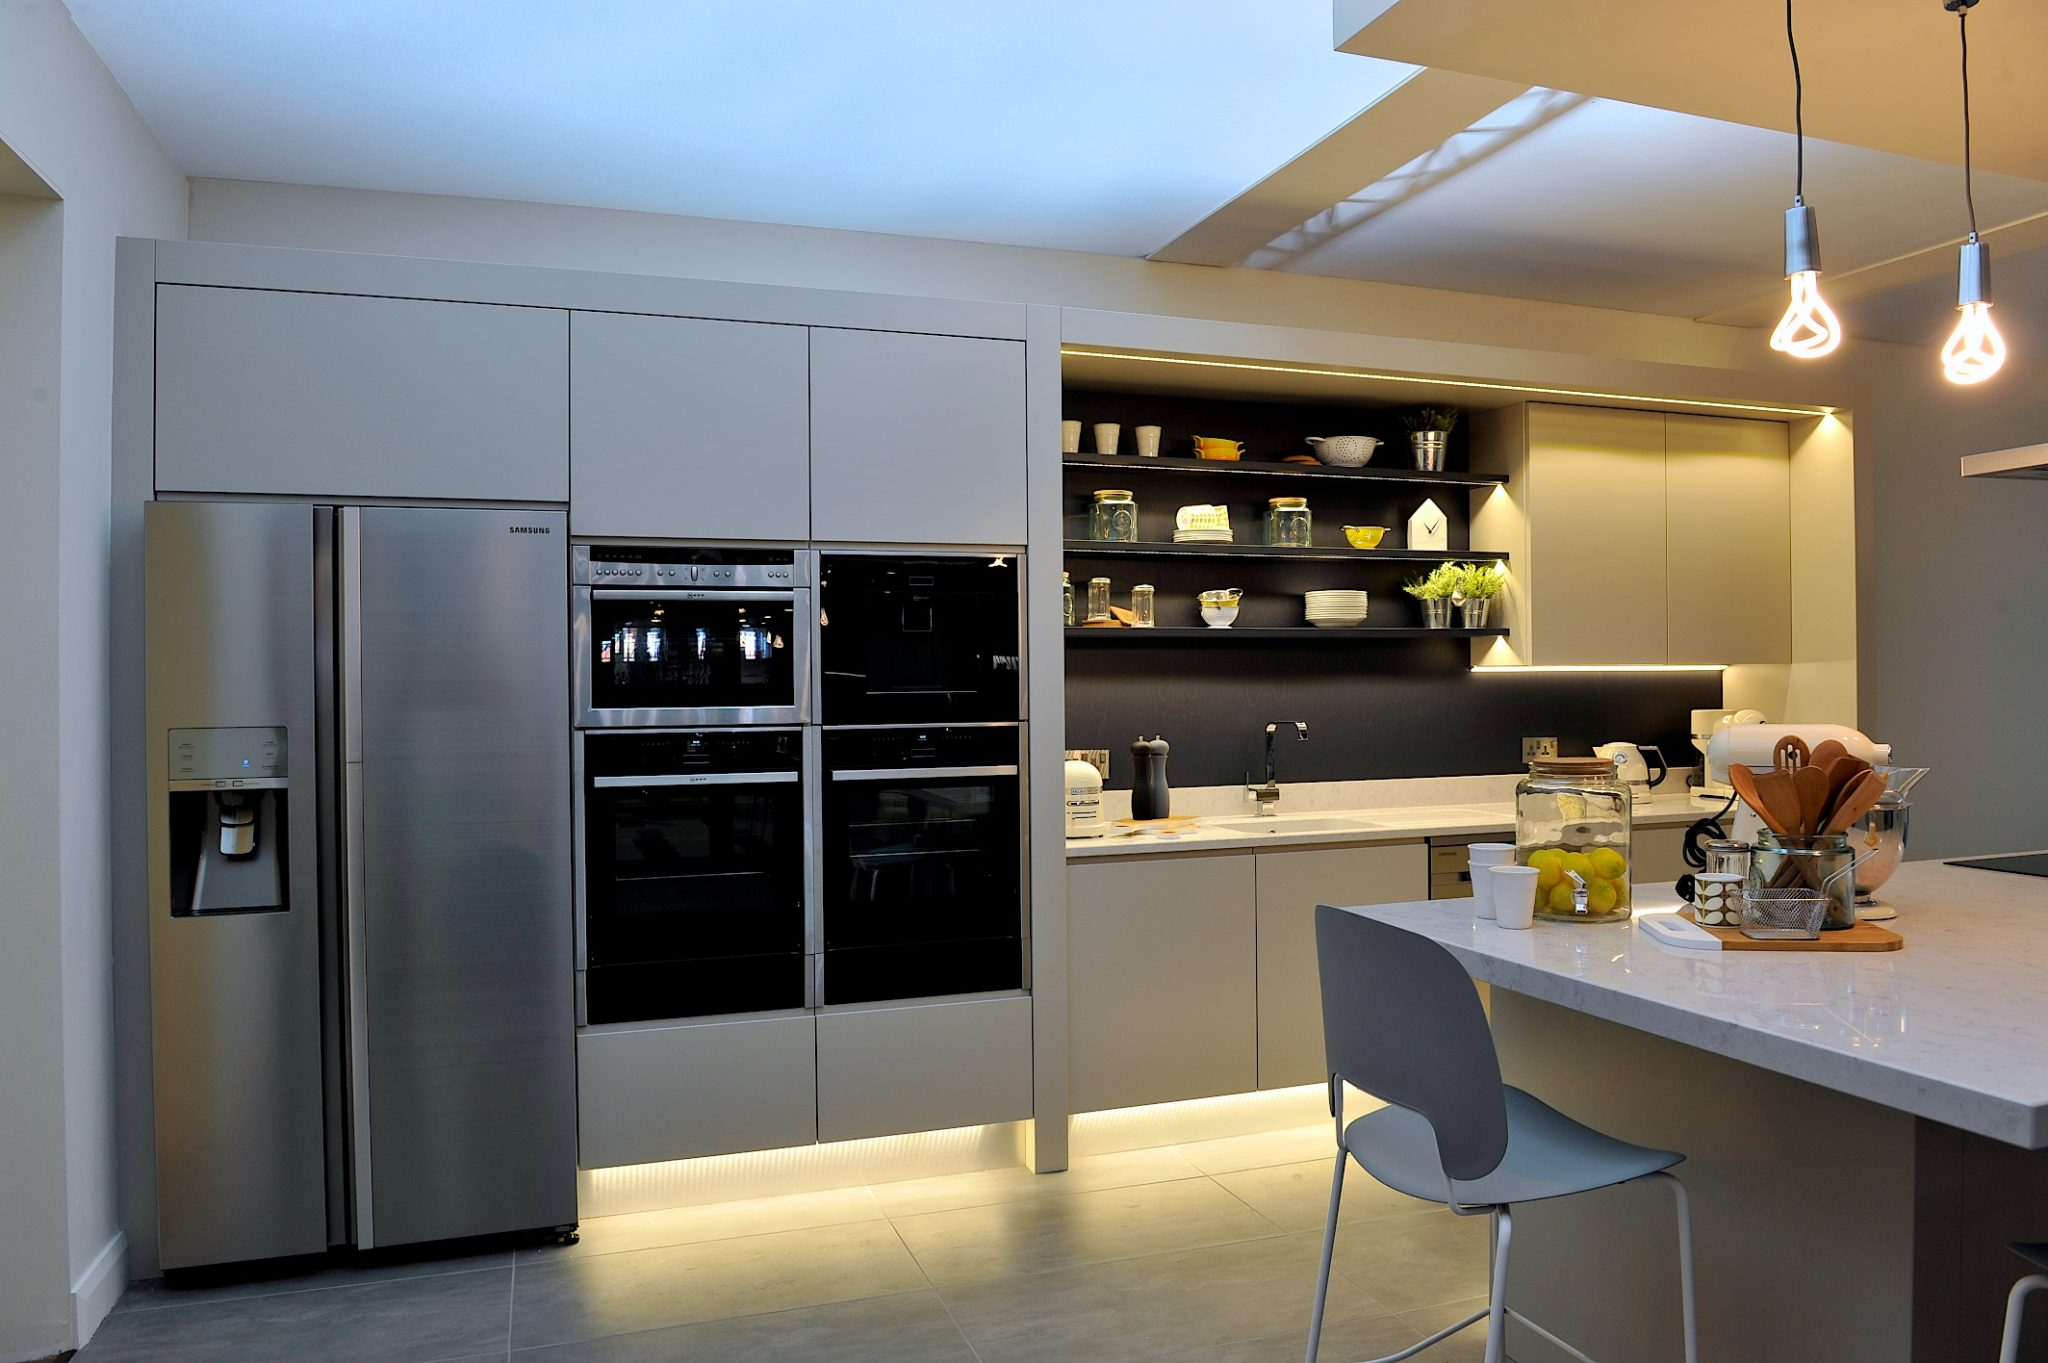 Enigma design ideal home show house kitchen enigma design 3 - Kitchen design expo ...